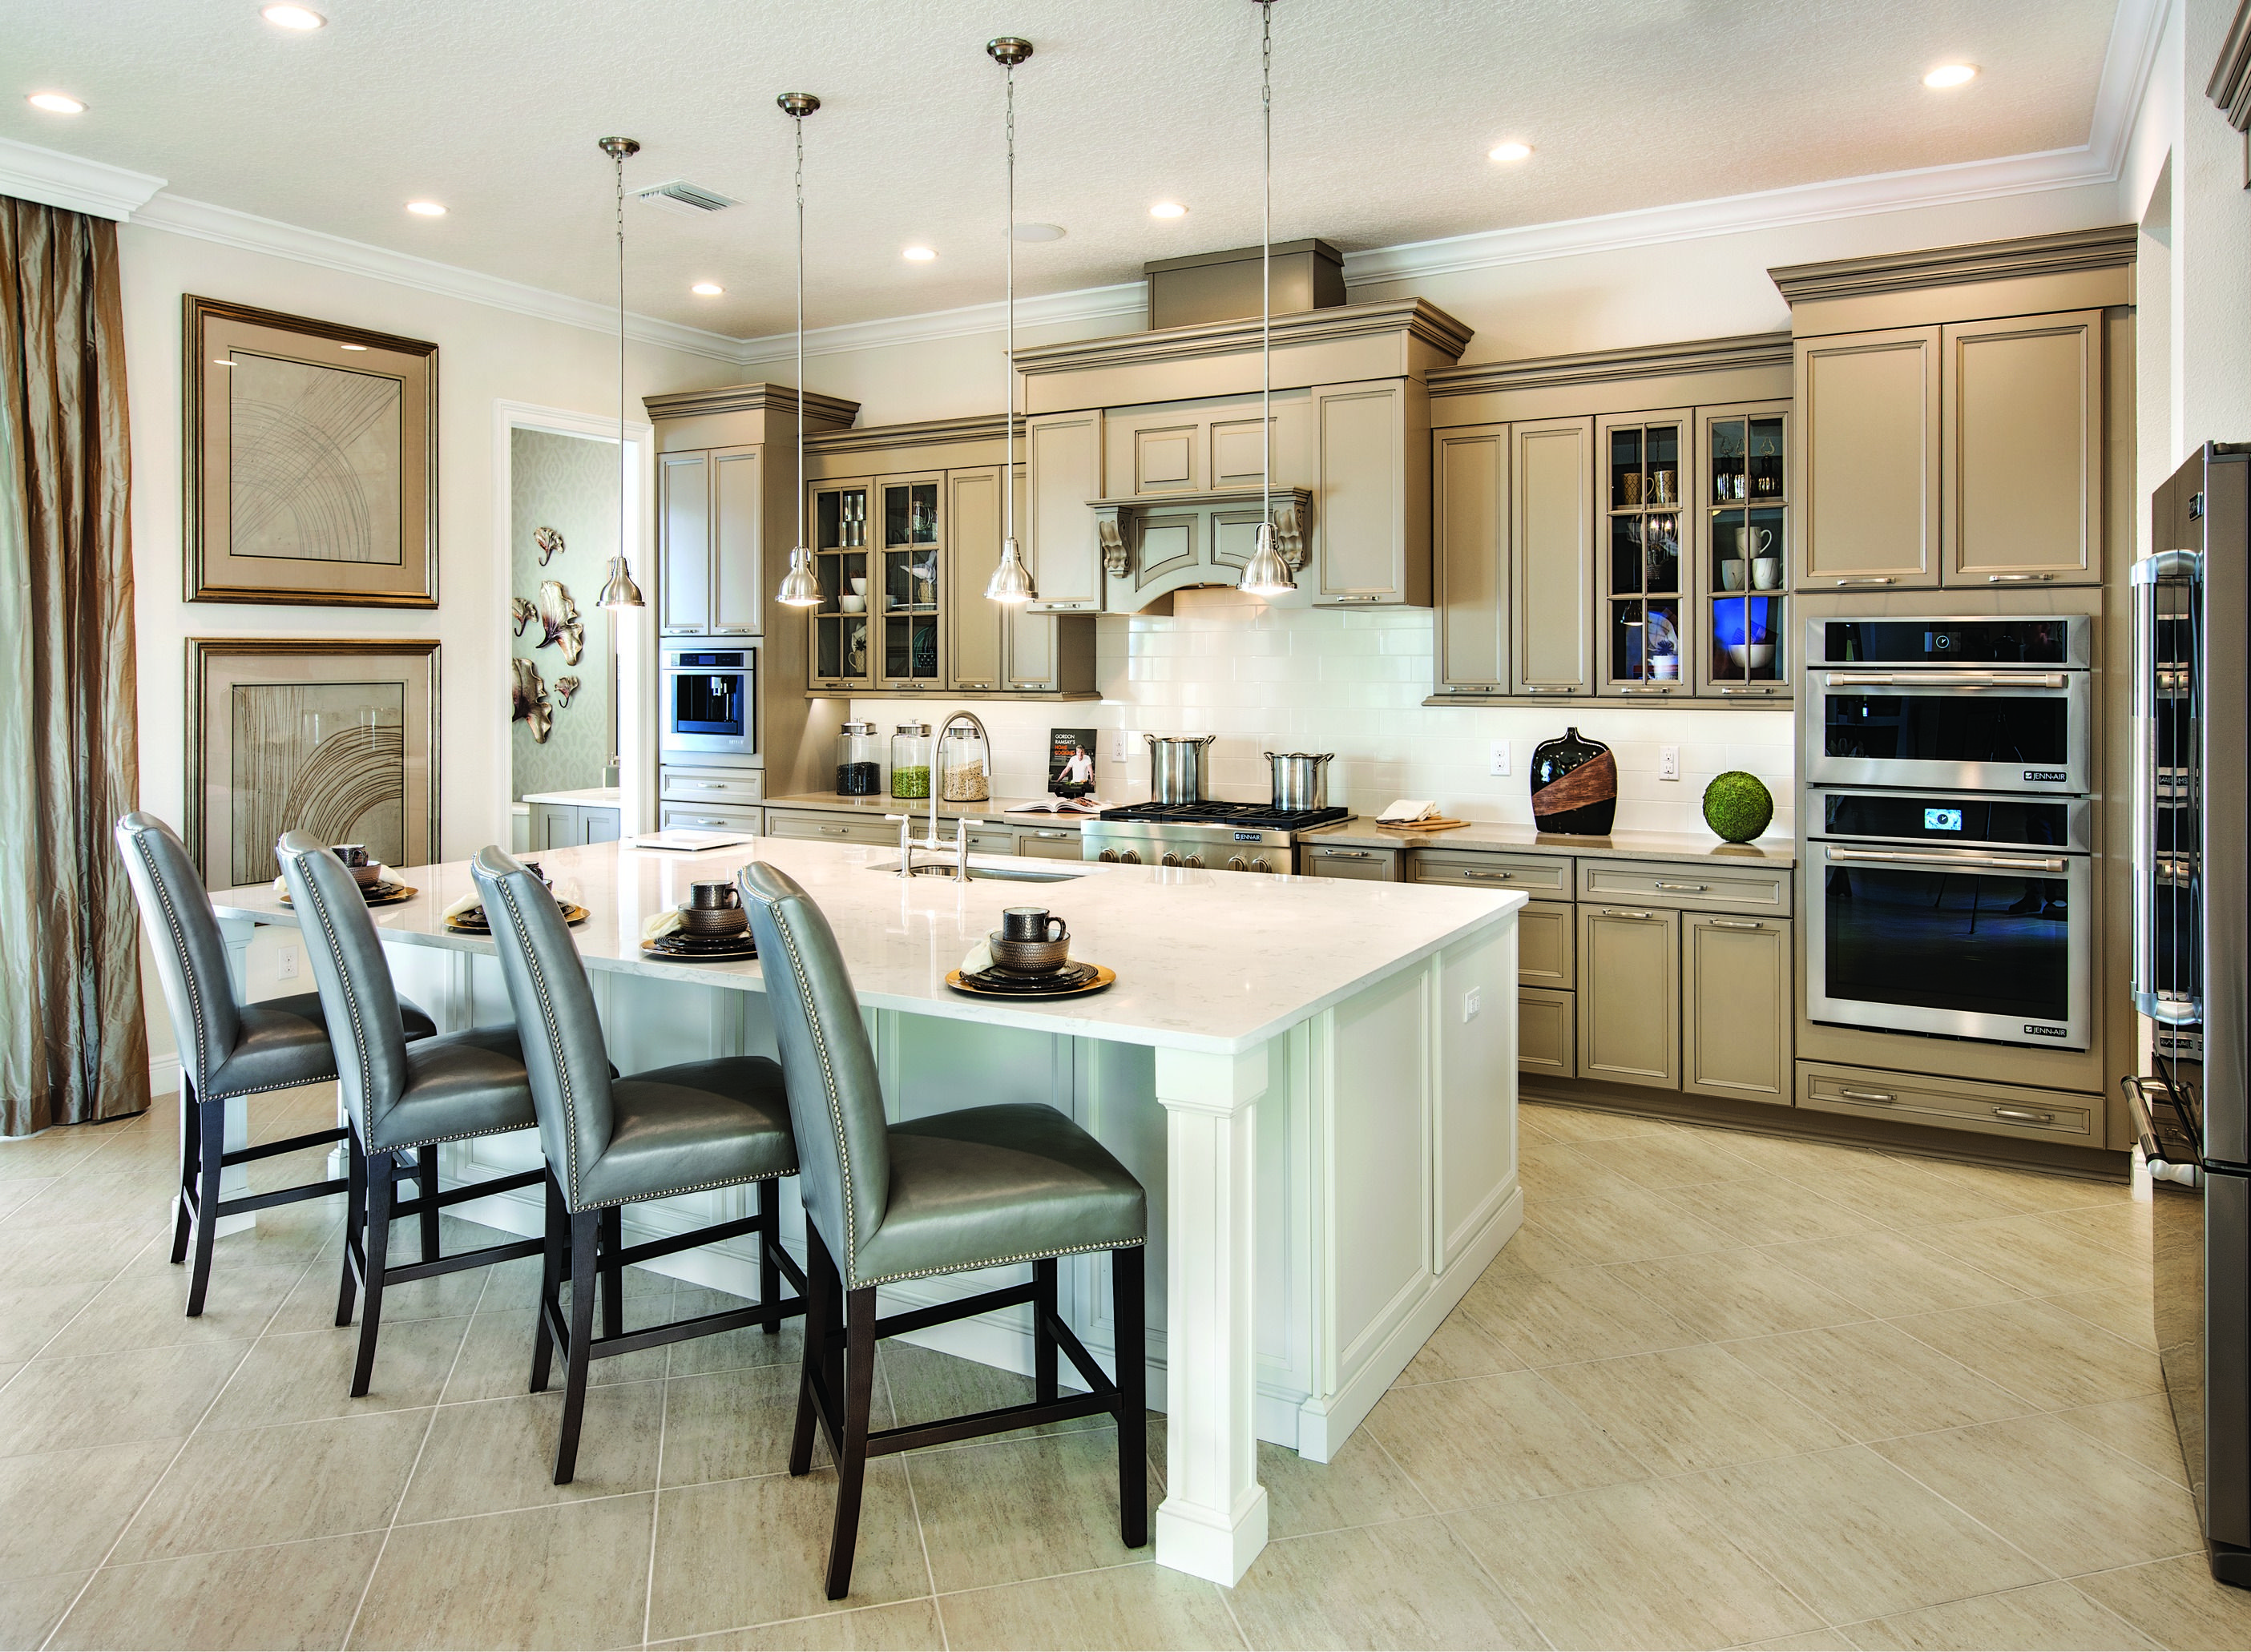 impress guests with this fantastically crafted two toned kitchen